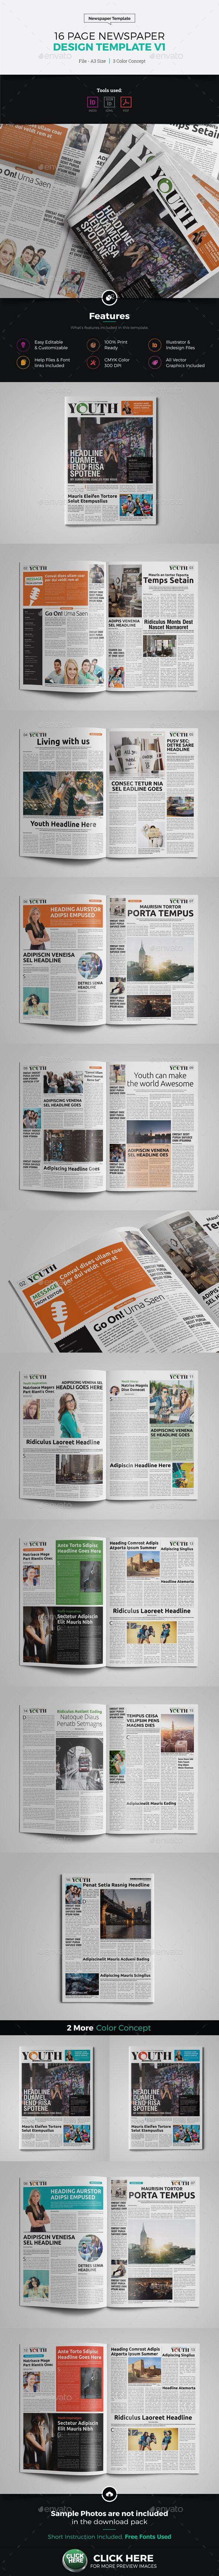 16 Page Newspaper InDesign v1